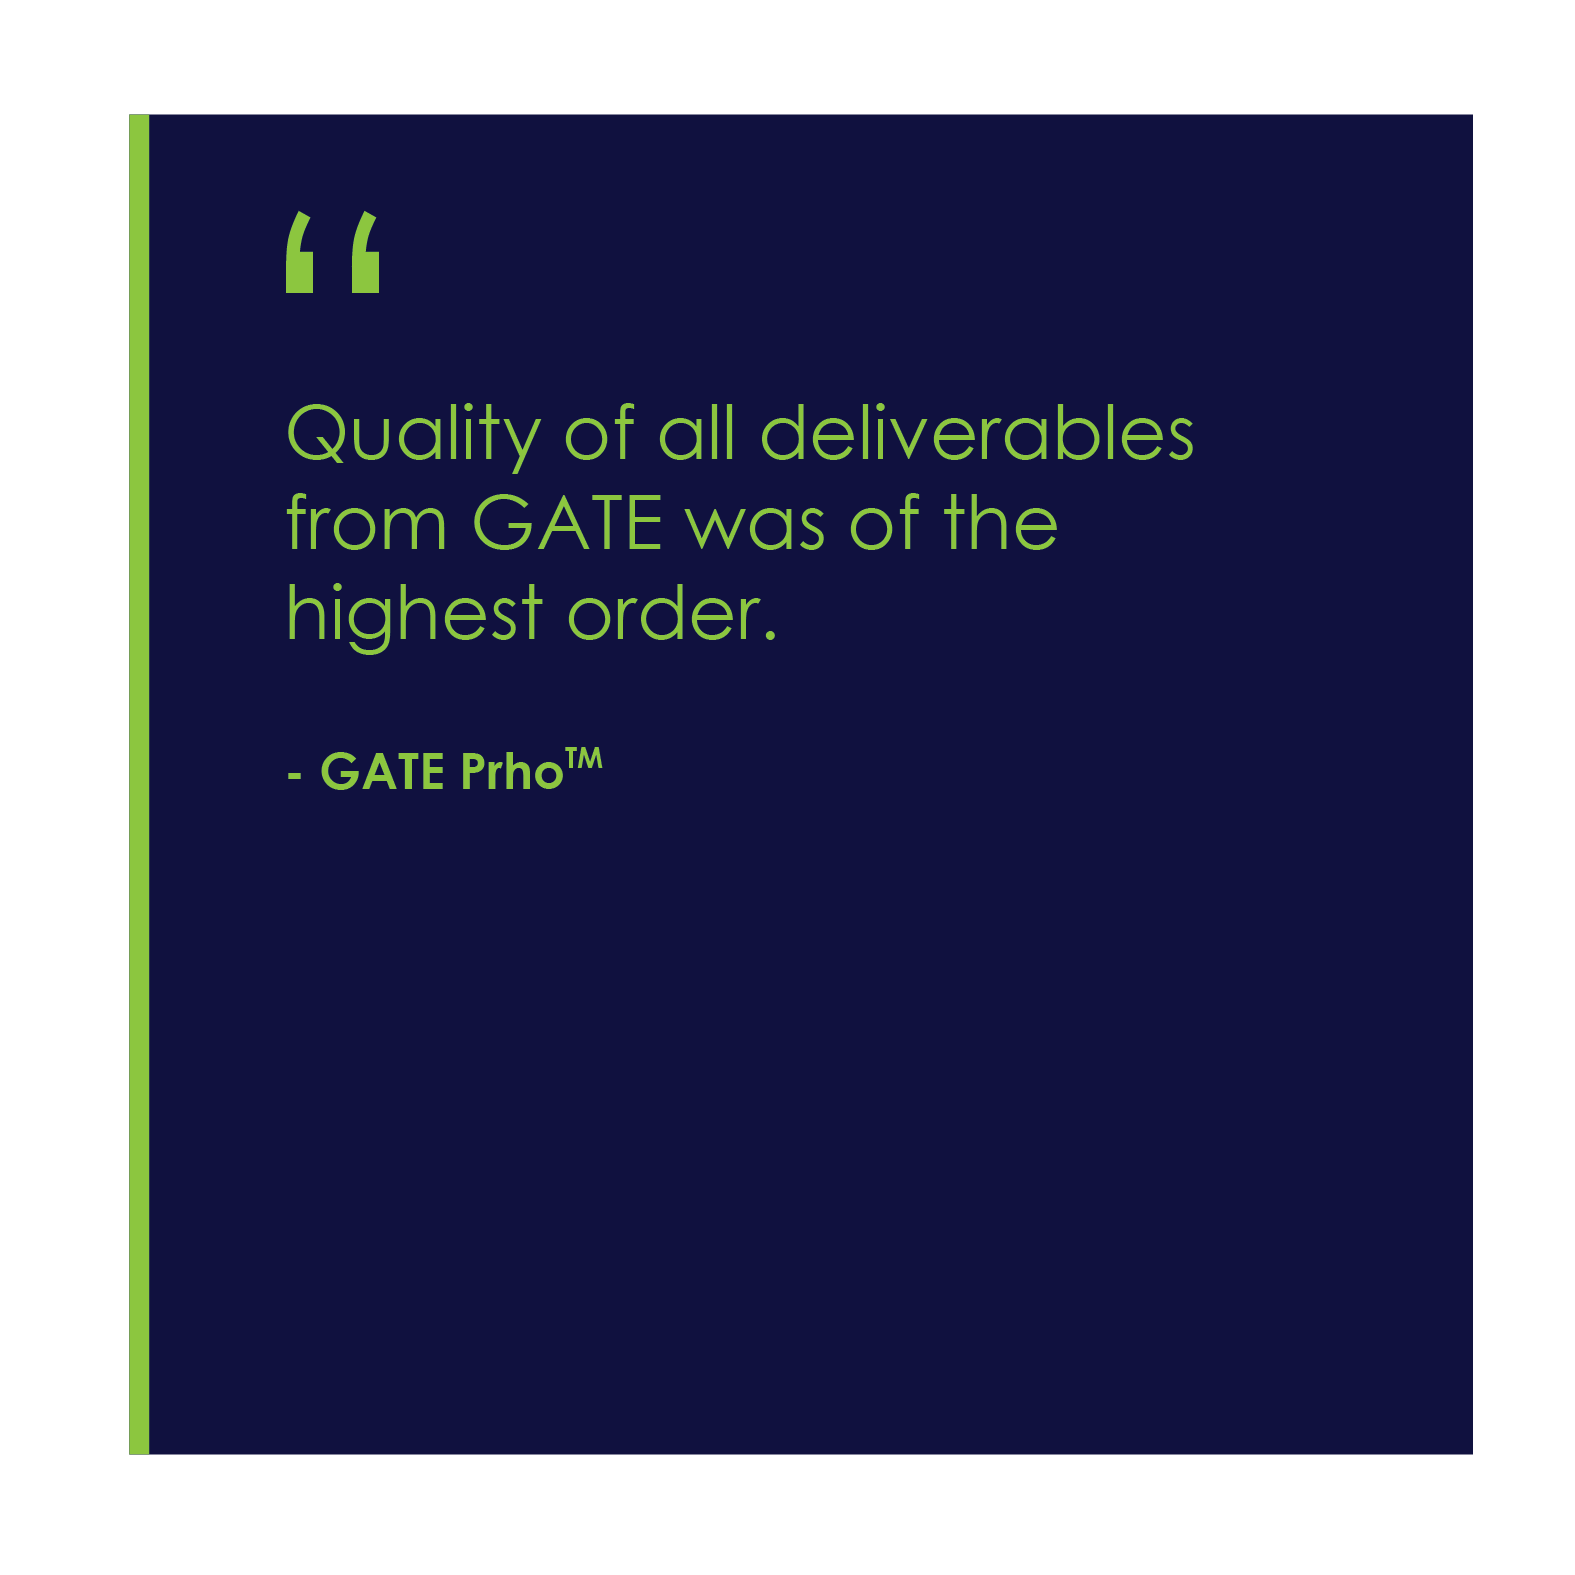 GATE Energy Website Quotes-11.png